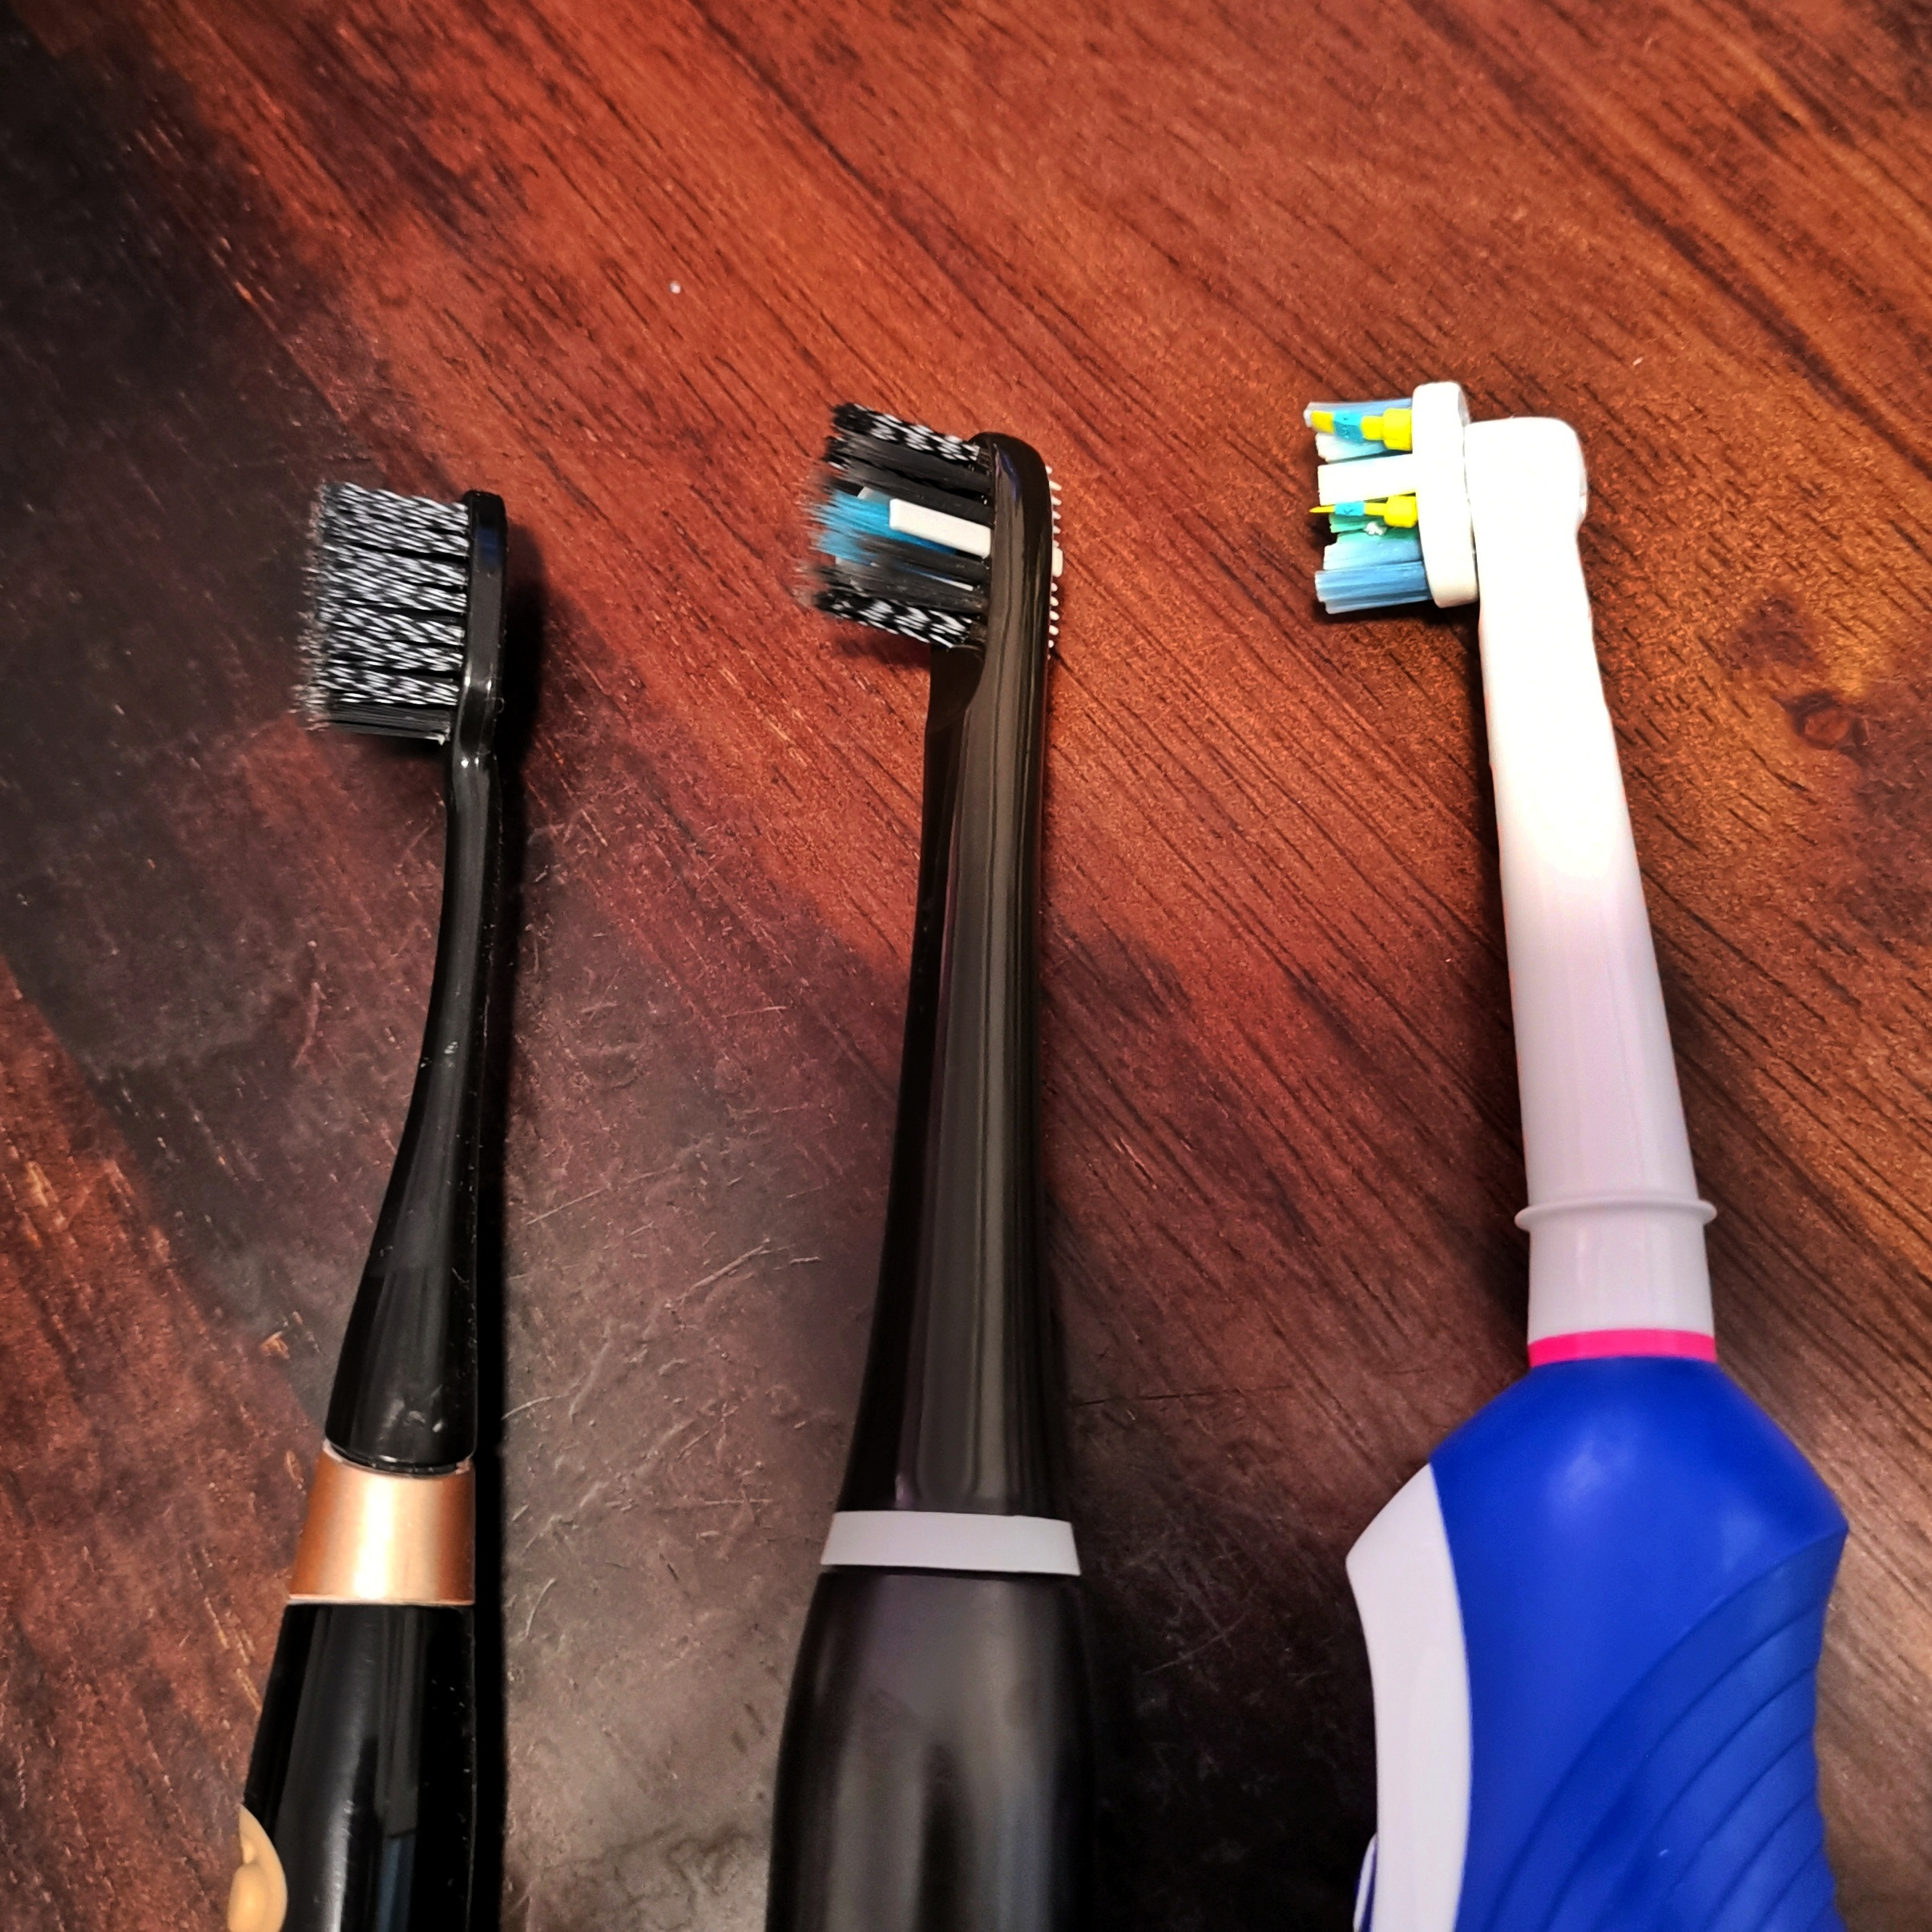 Electric Toothbrush - Systema, Colgate & Oral B close-up